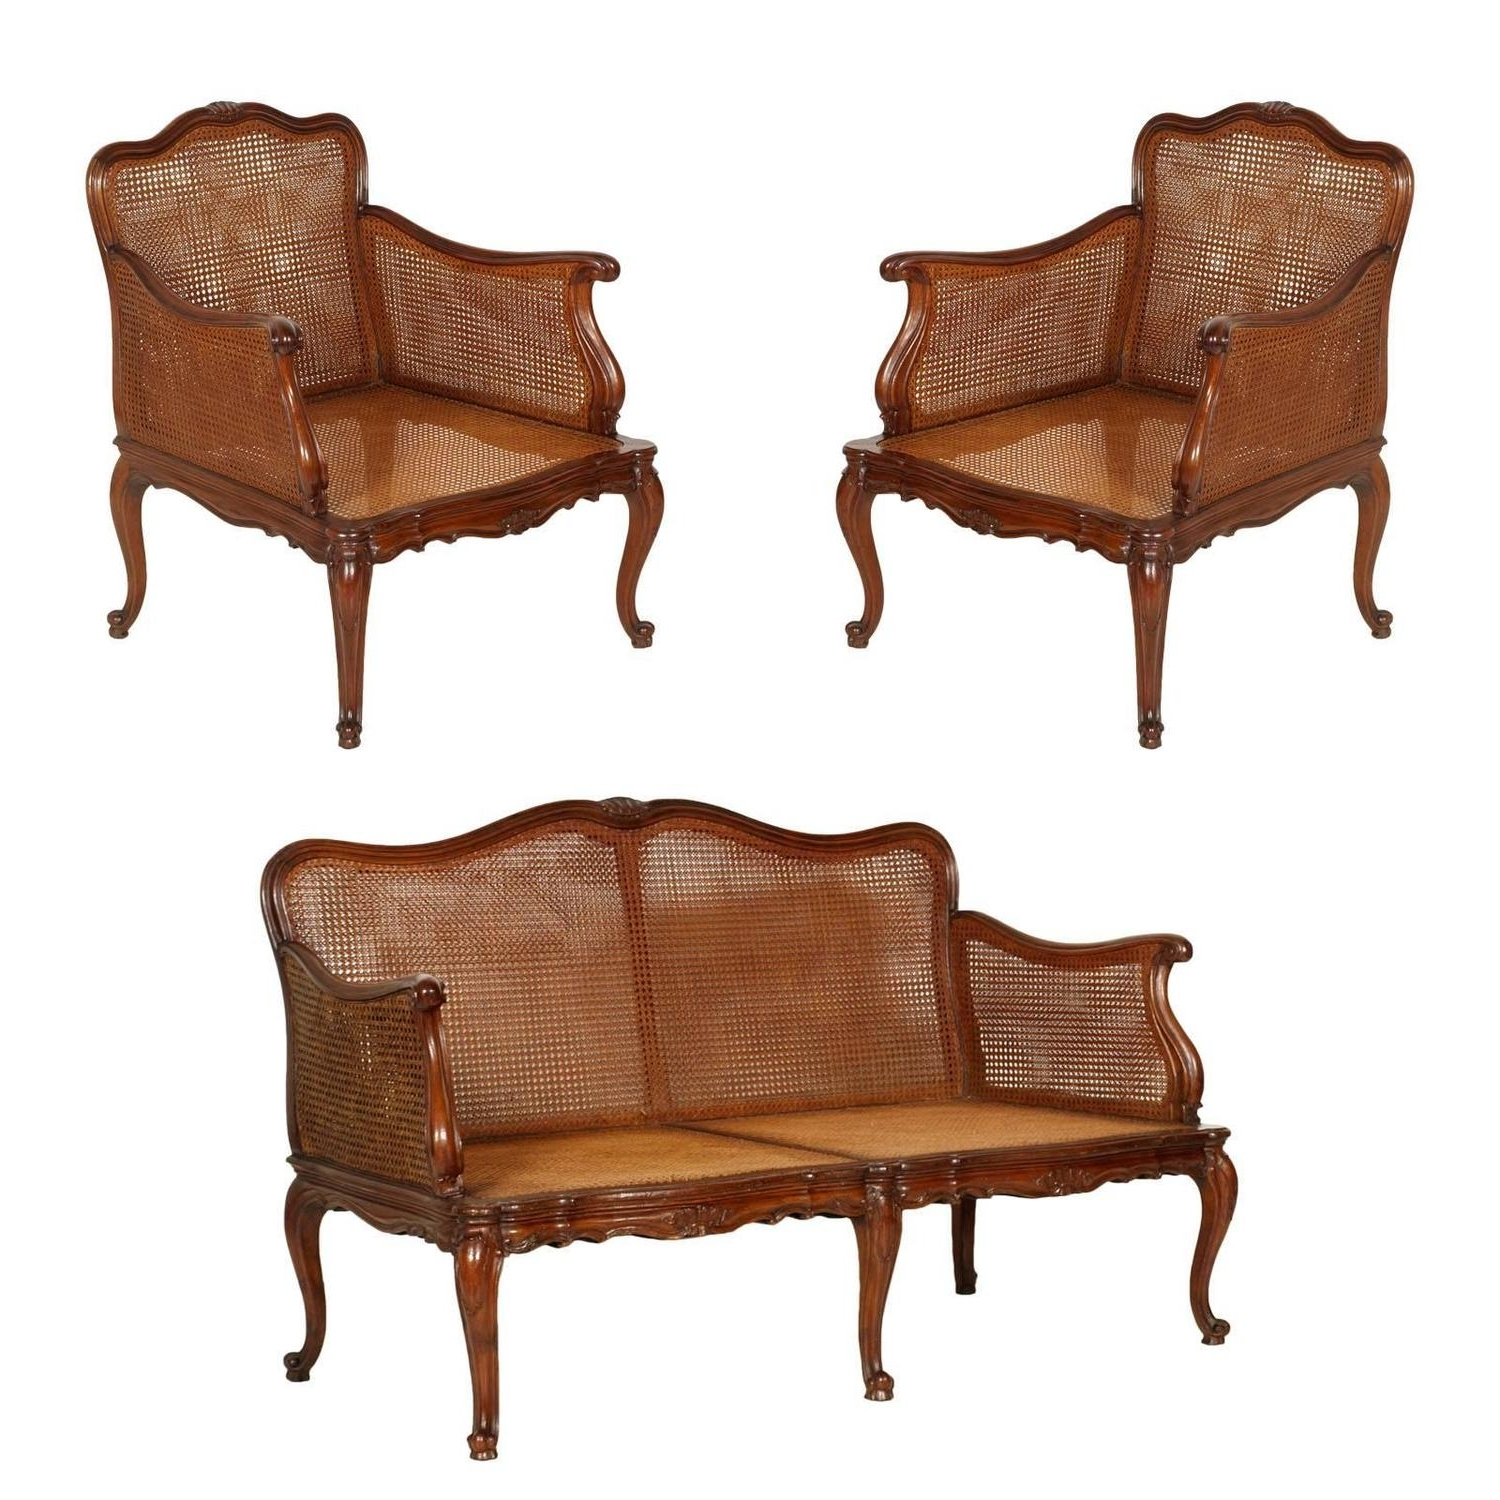 Sofa Arm Chairs Regarding 2019 19Th Century Venice Cadorin Sofa And Pair Of Armchairs Vienna (View 18 of 20)